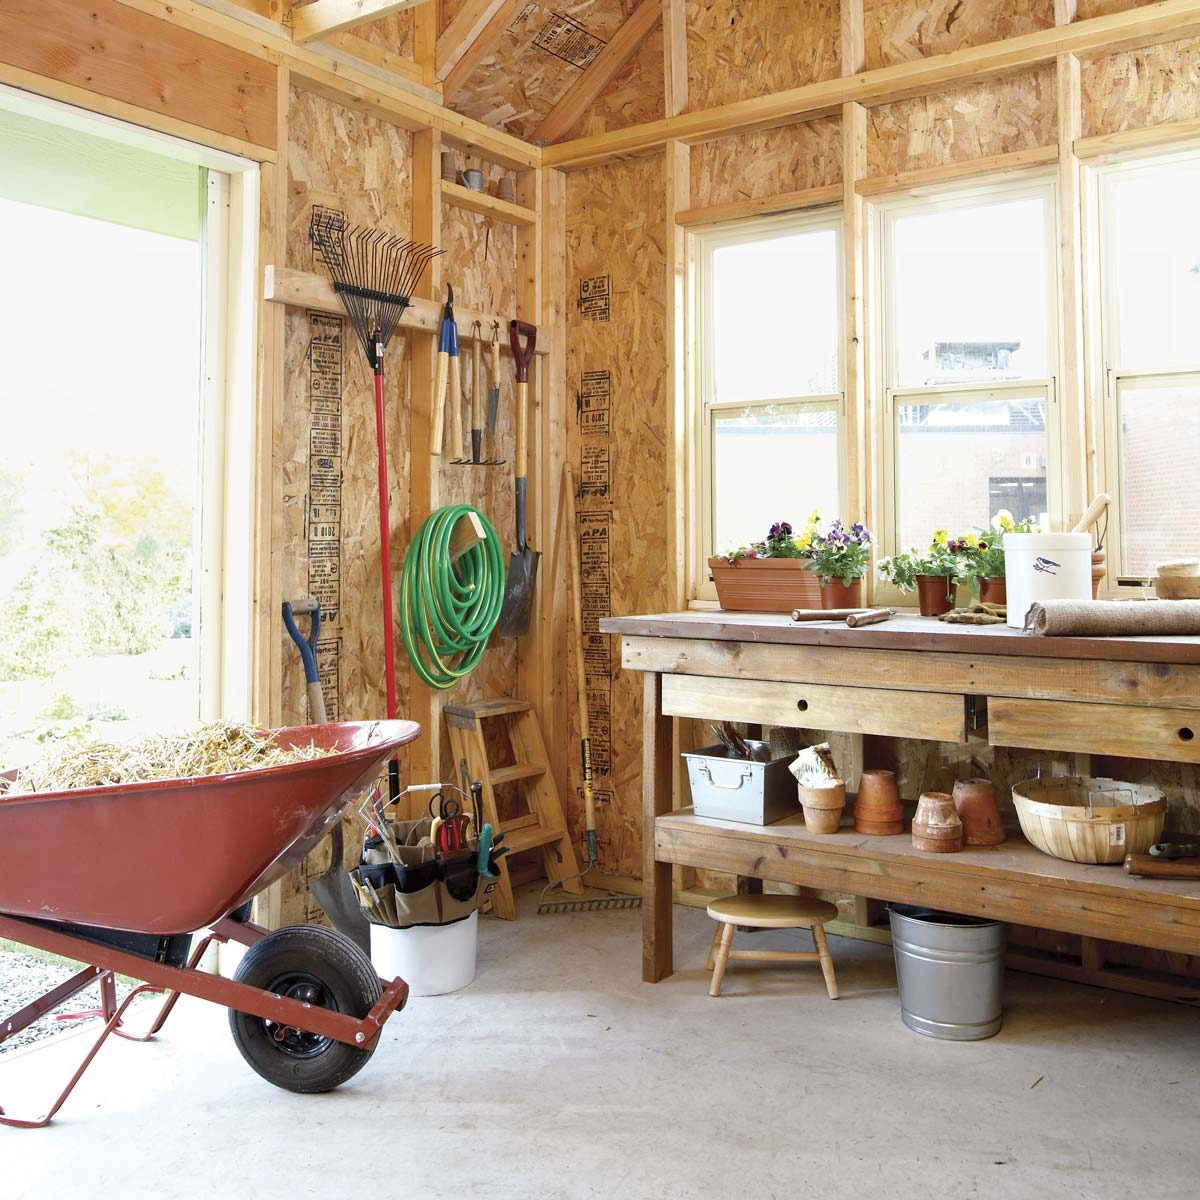 How to Build a Shed: 2011 Garden Shed | Family Handyman